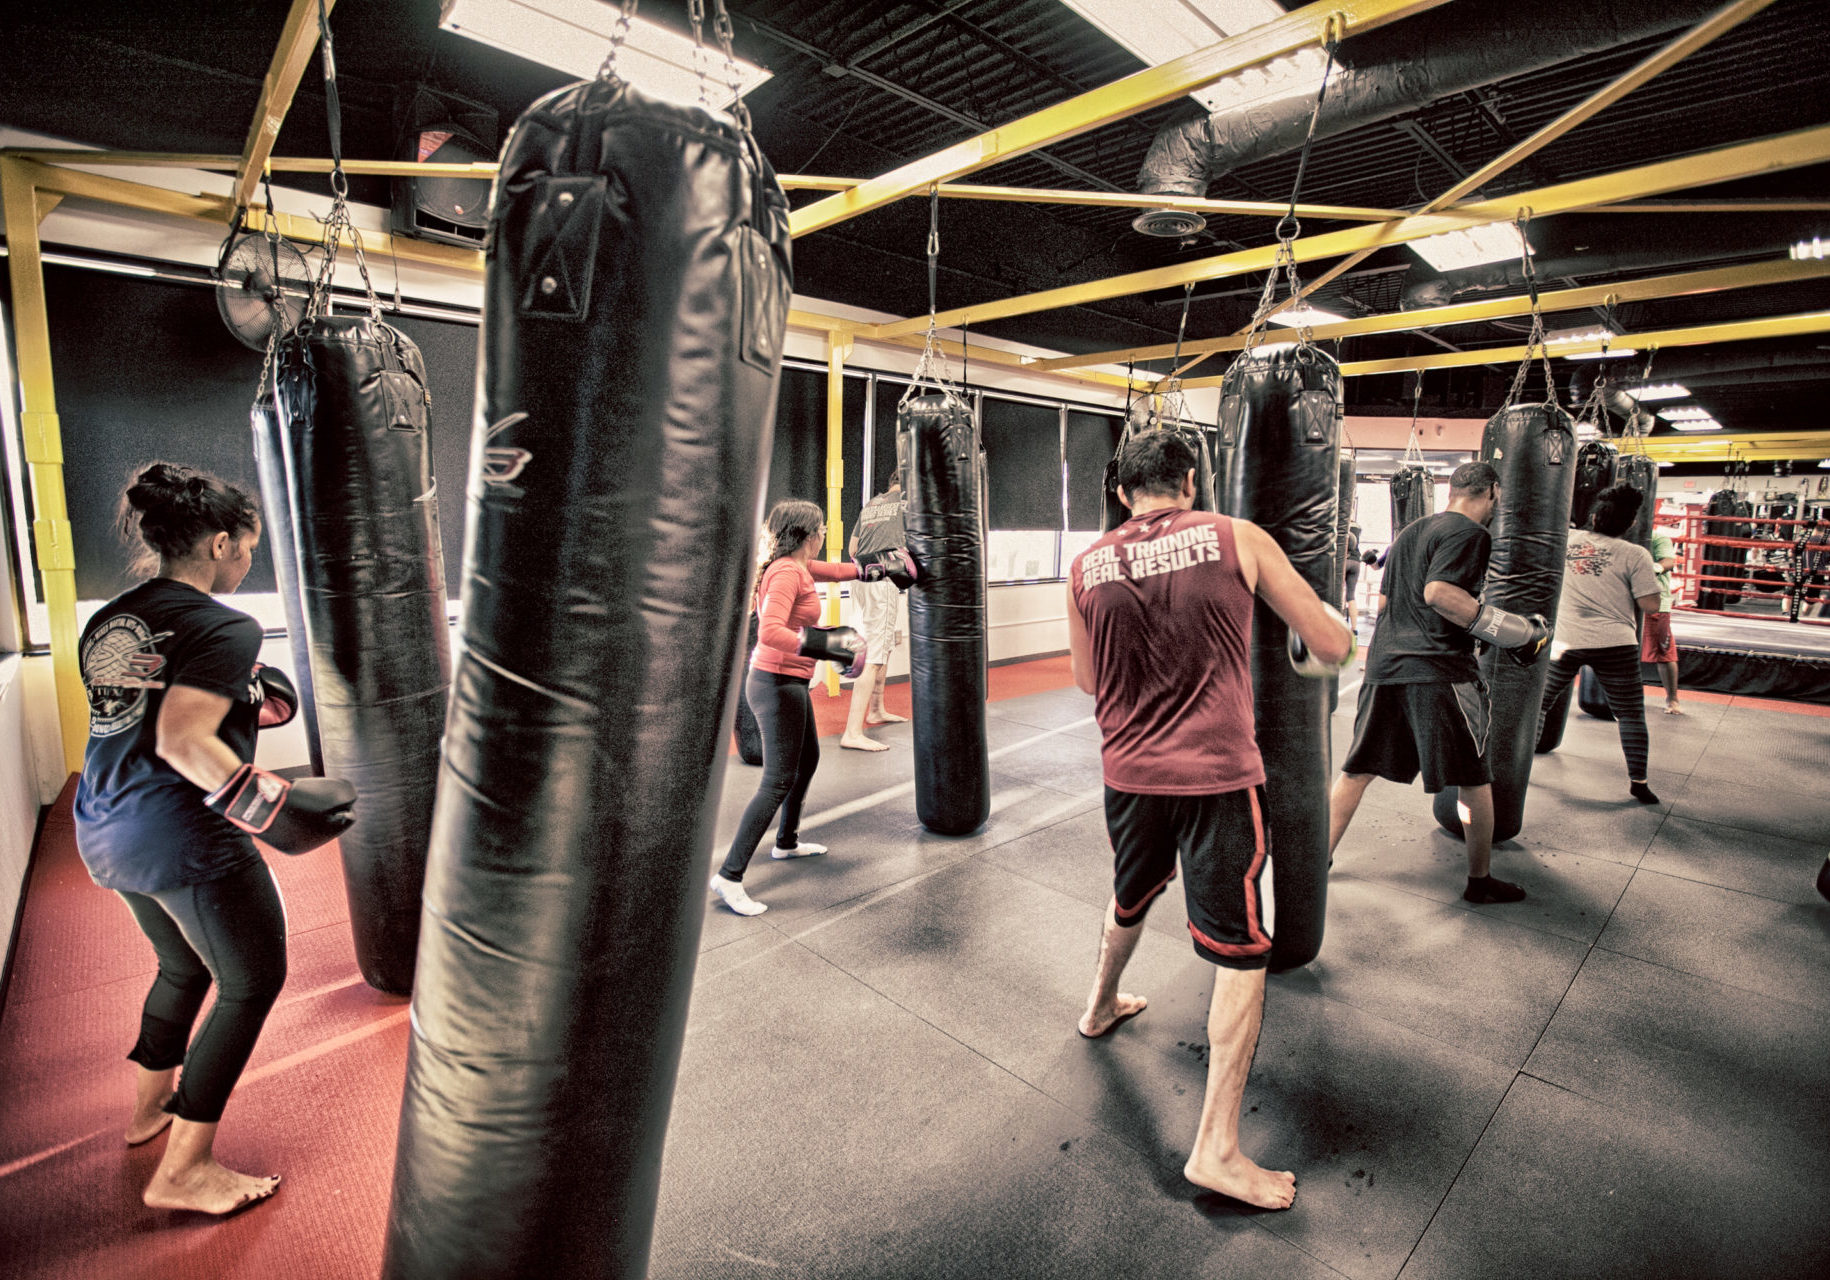 AJC Declares X3 Sports The Place To Go For Kickboxing In Atlanta